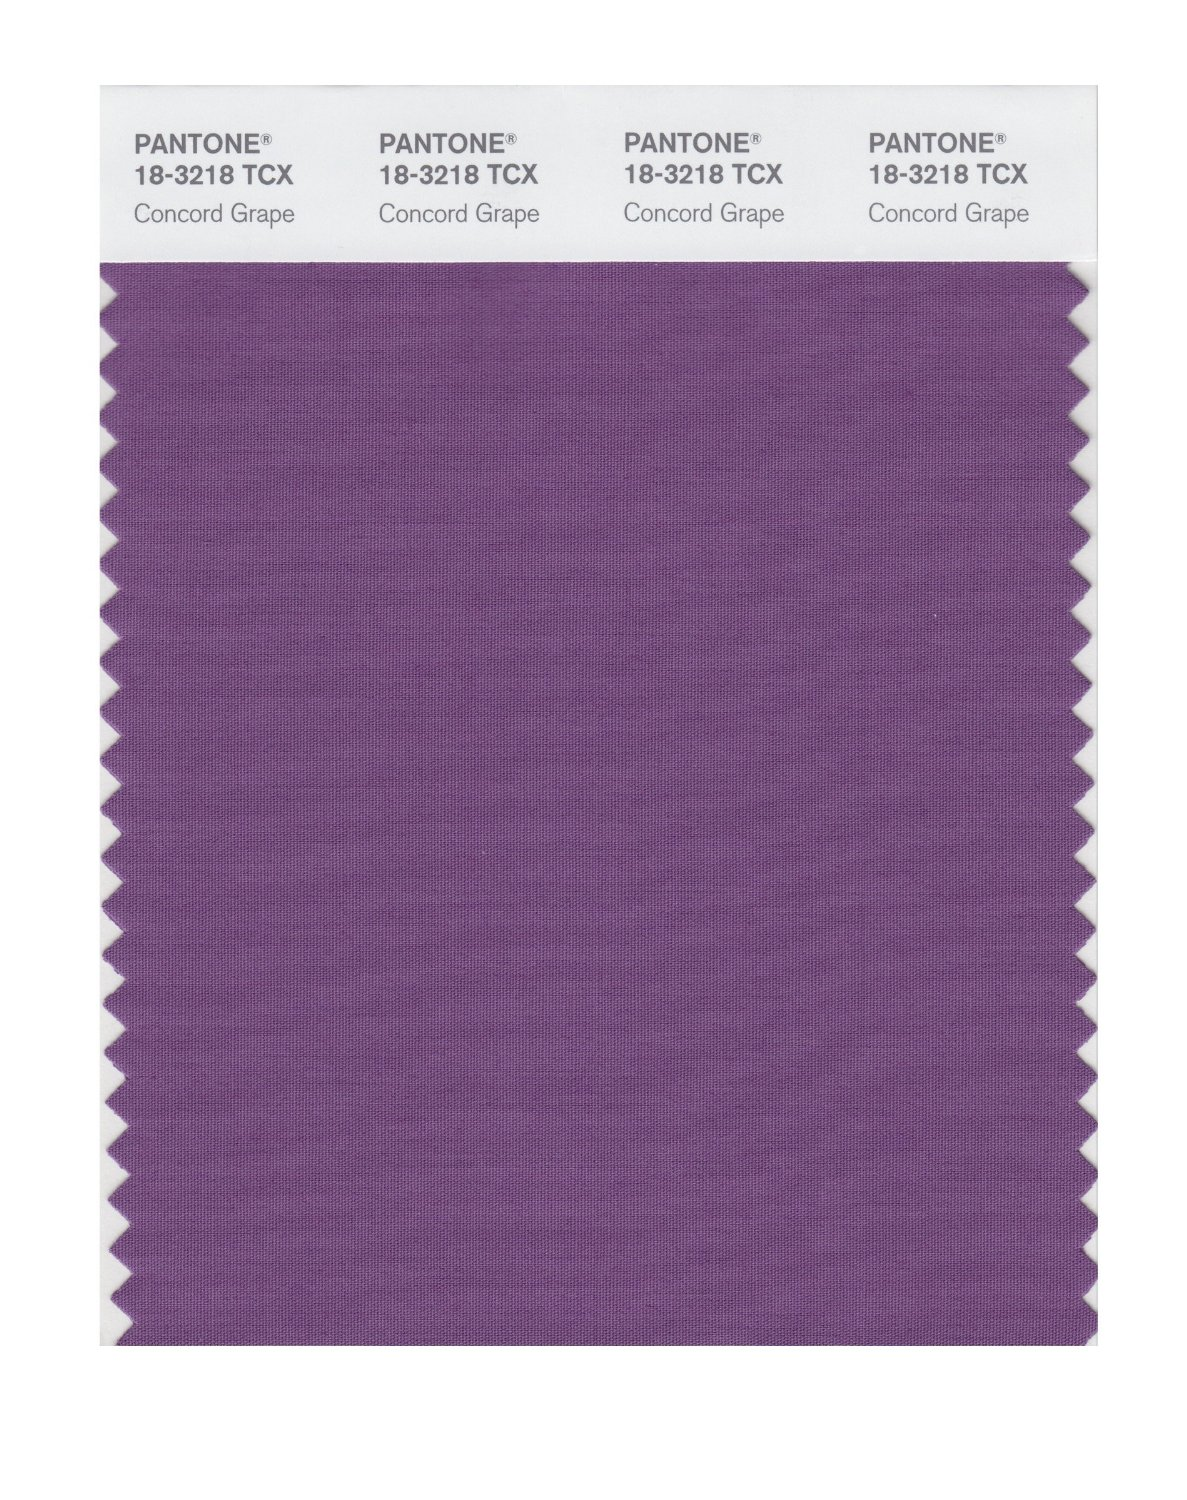 Pantone Smart Swatch 18-3218 Concord Grape